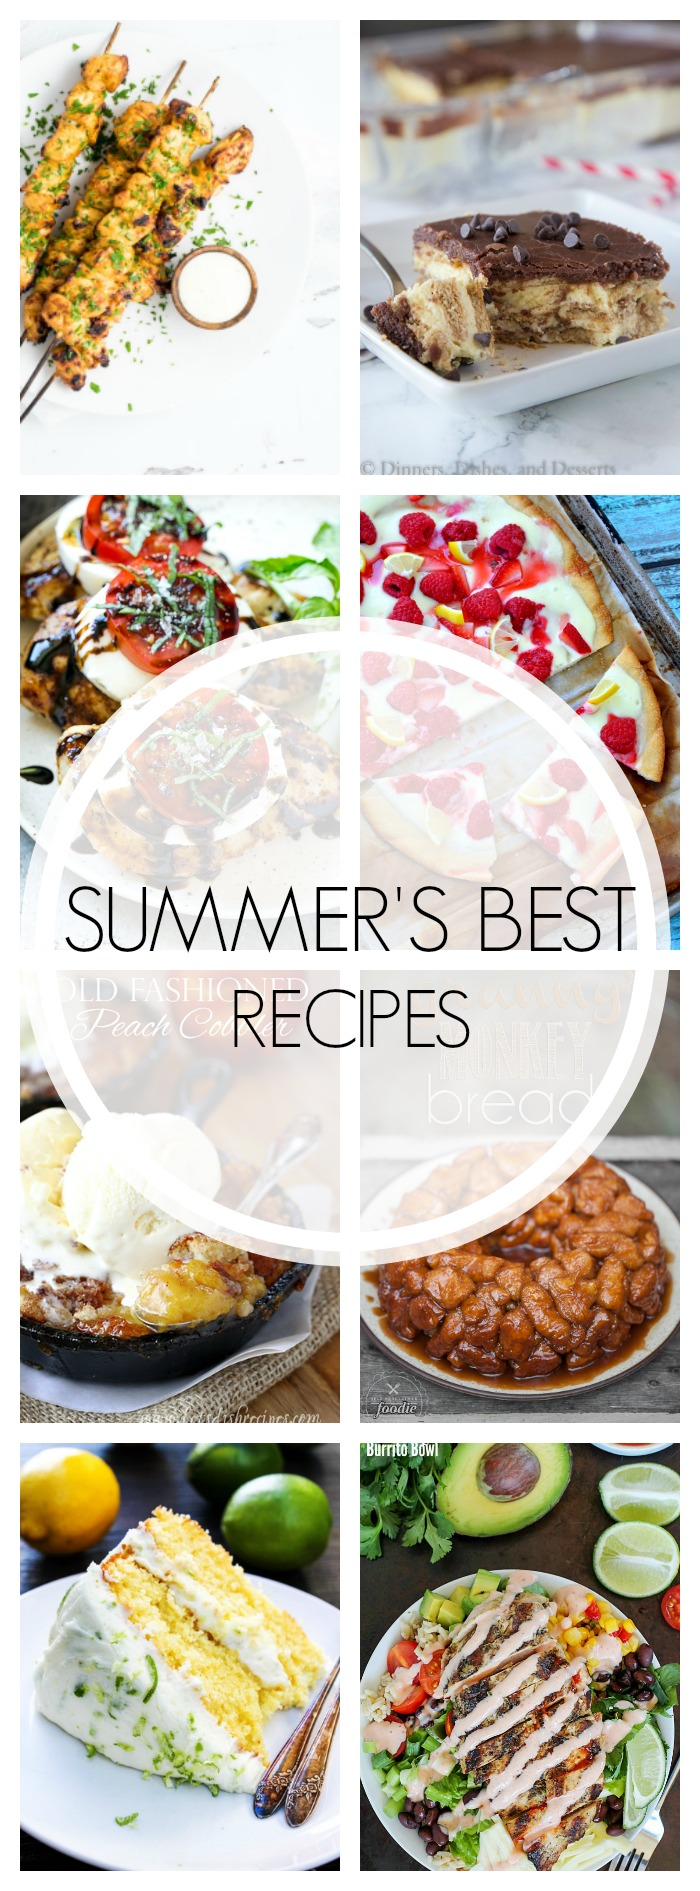 The Summer's Best Recipes